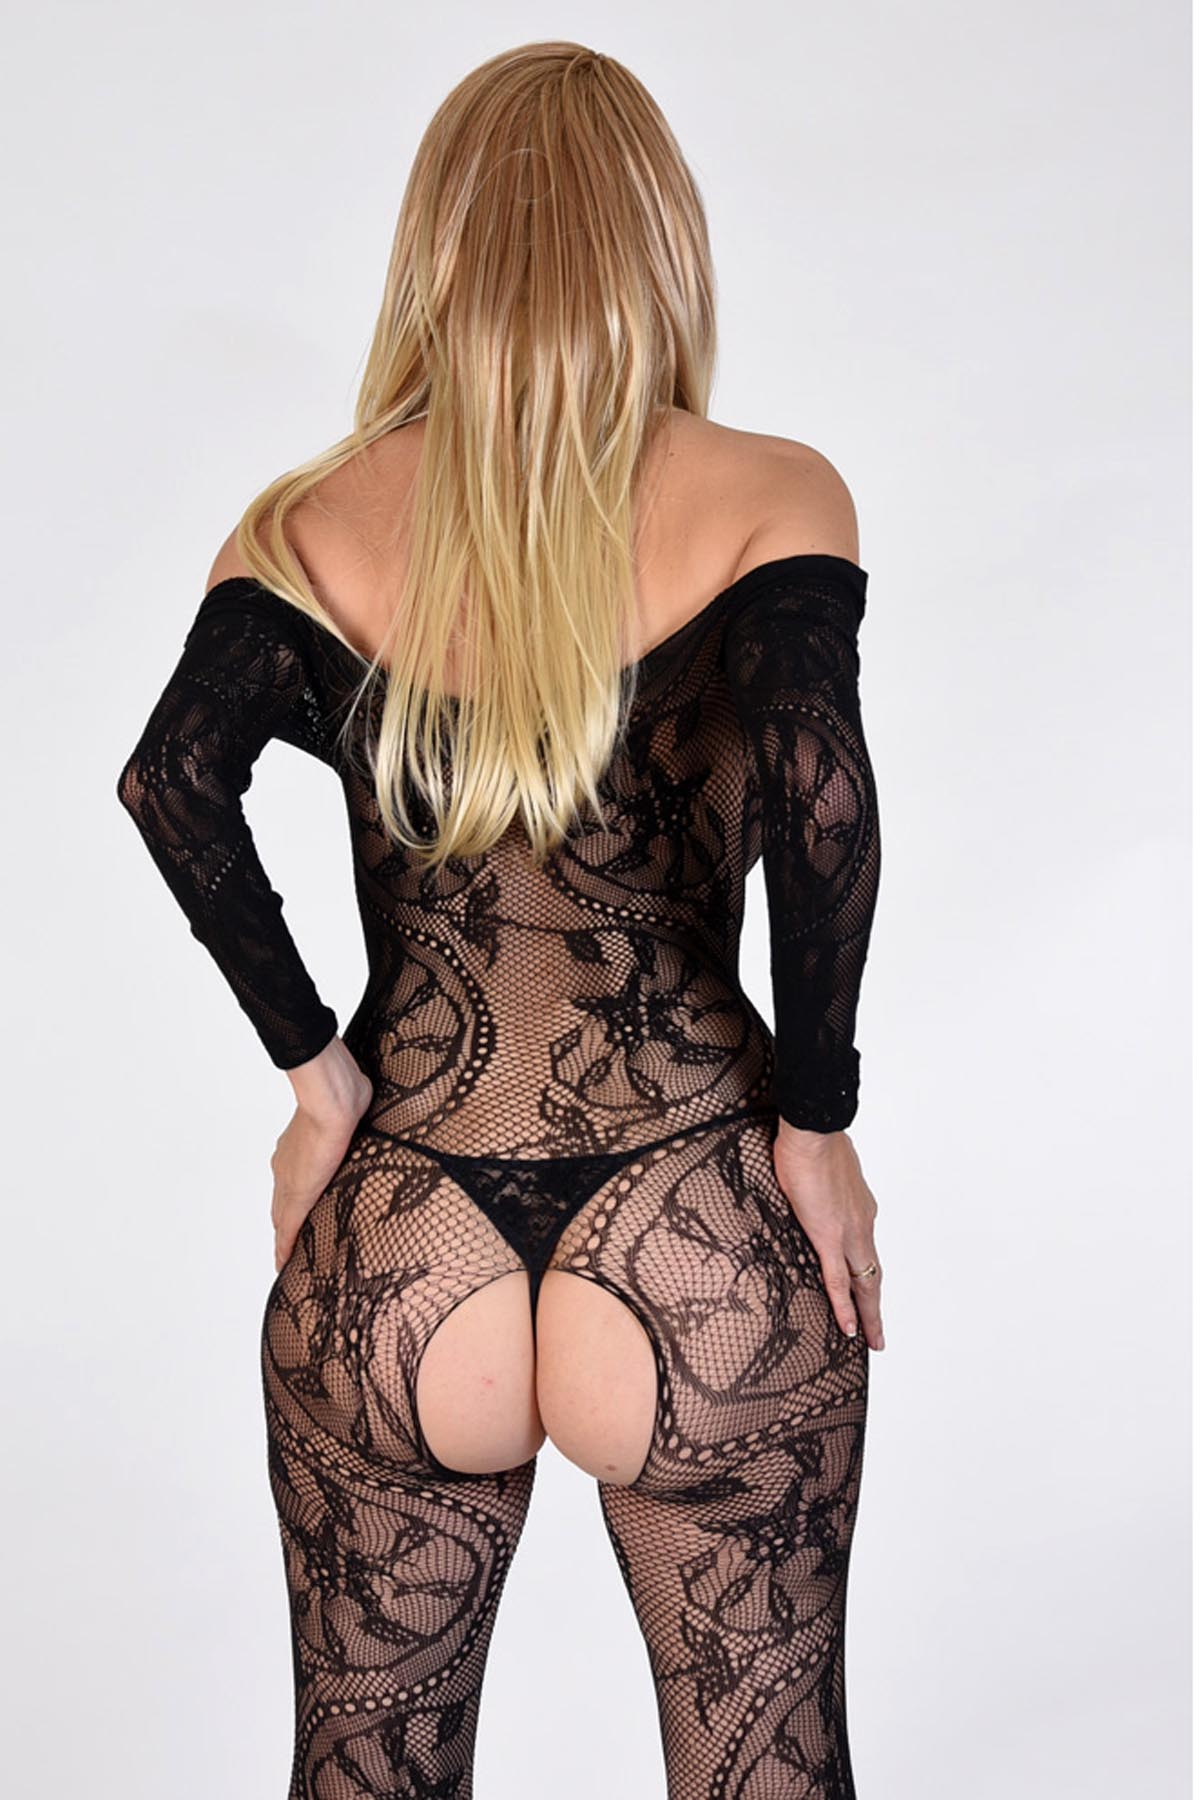 Roxanne London Independent Escort, back view